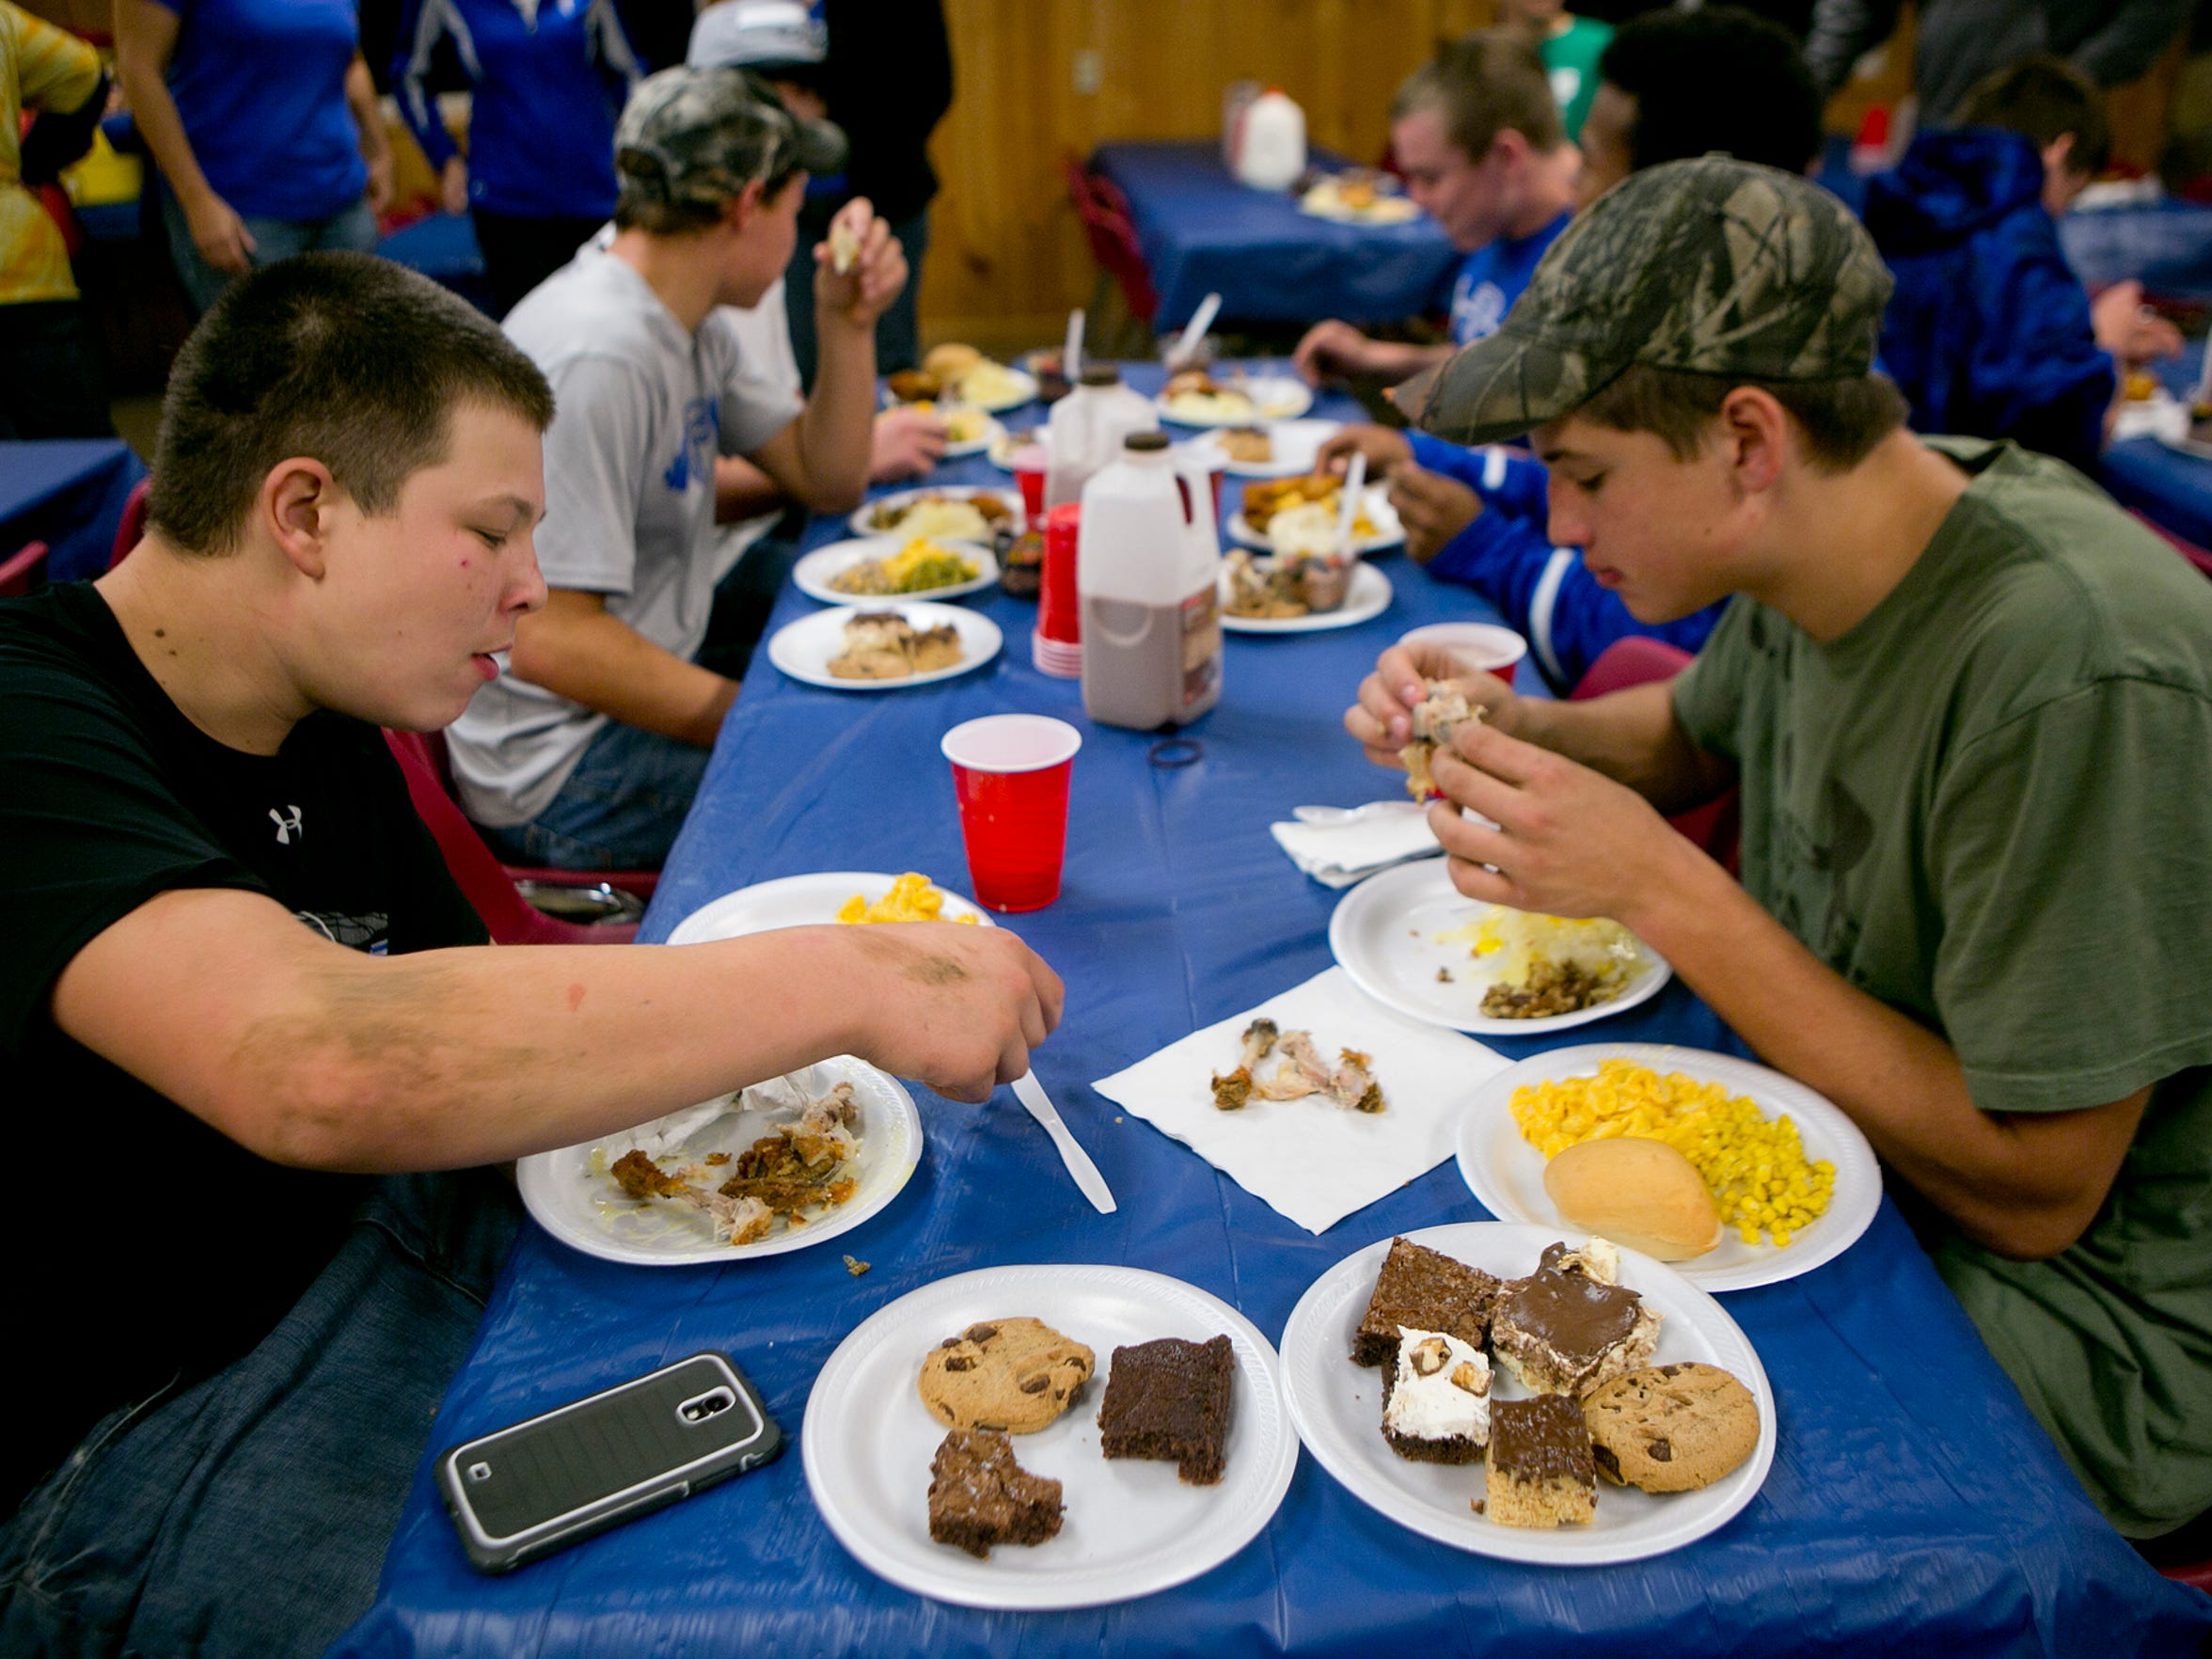 Players eat during the team dinner at the West Lodge at Lake Emily in Amherst, Thursday, Nov. 5, 2015.